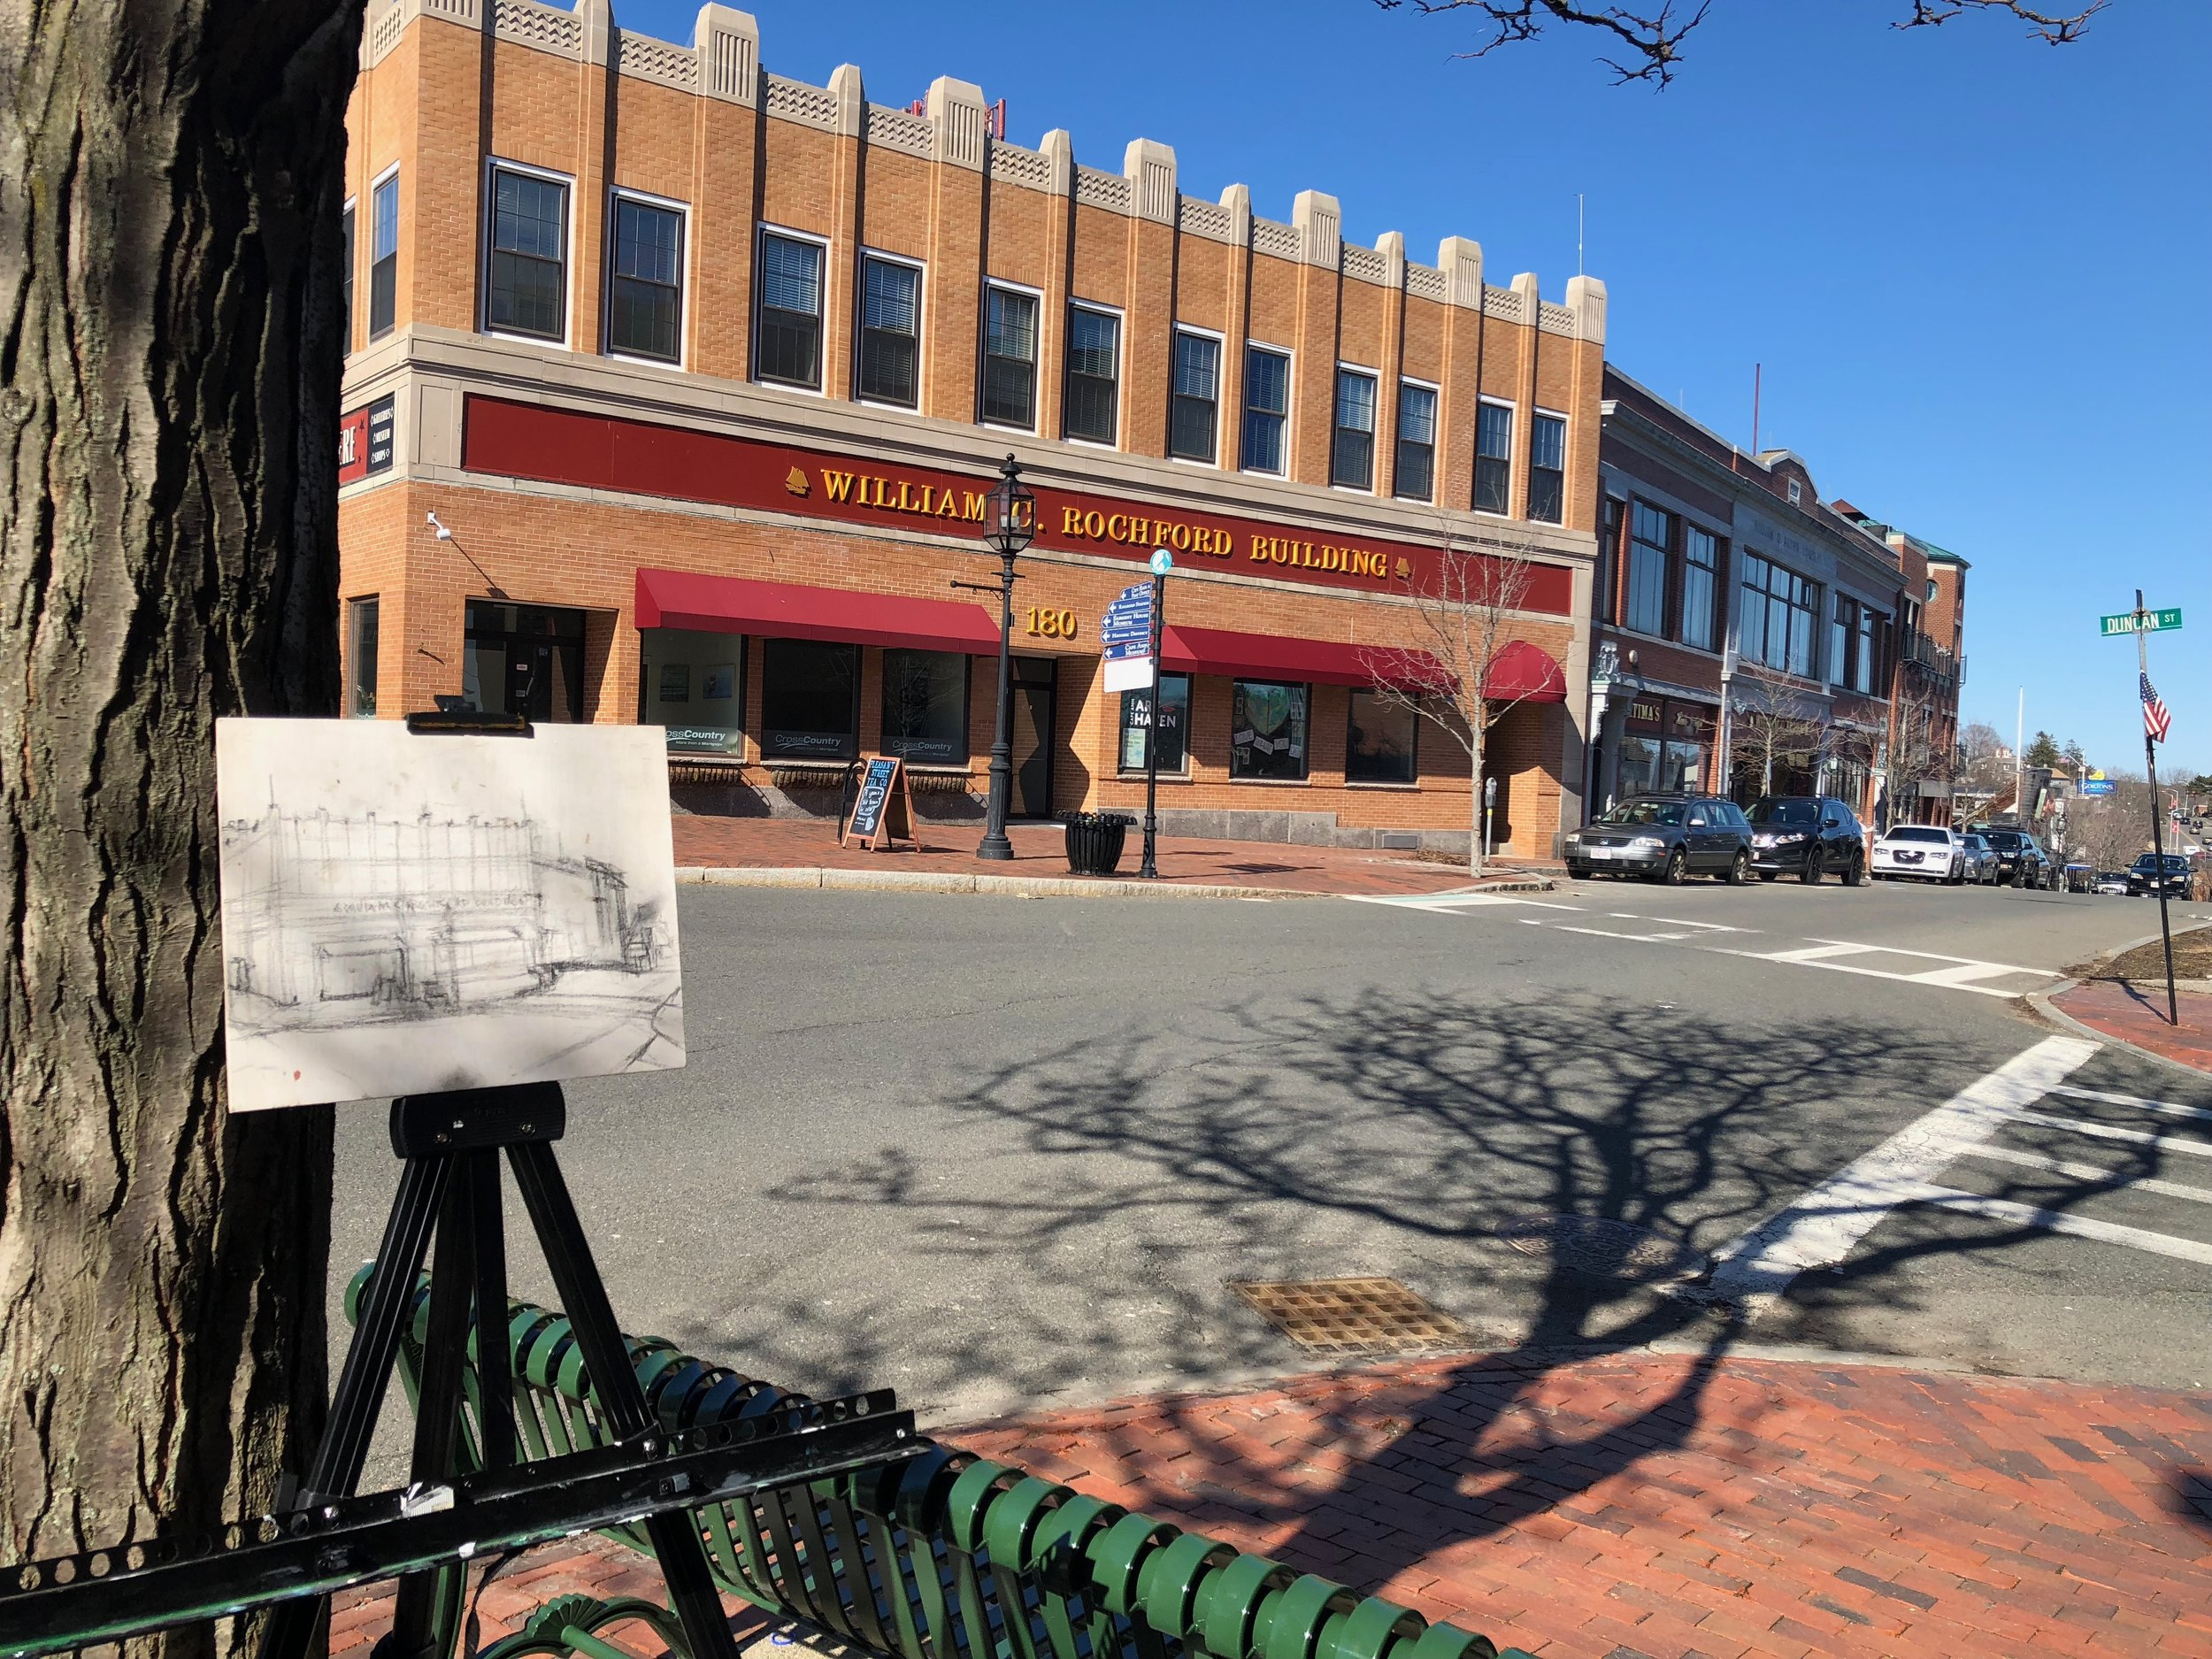 Out sketching on main street